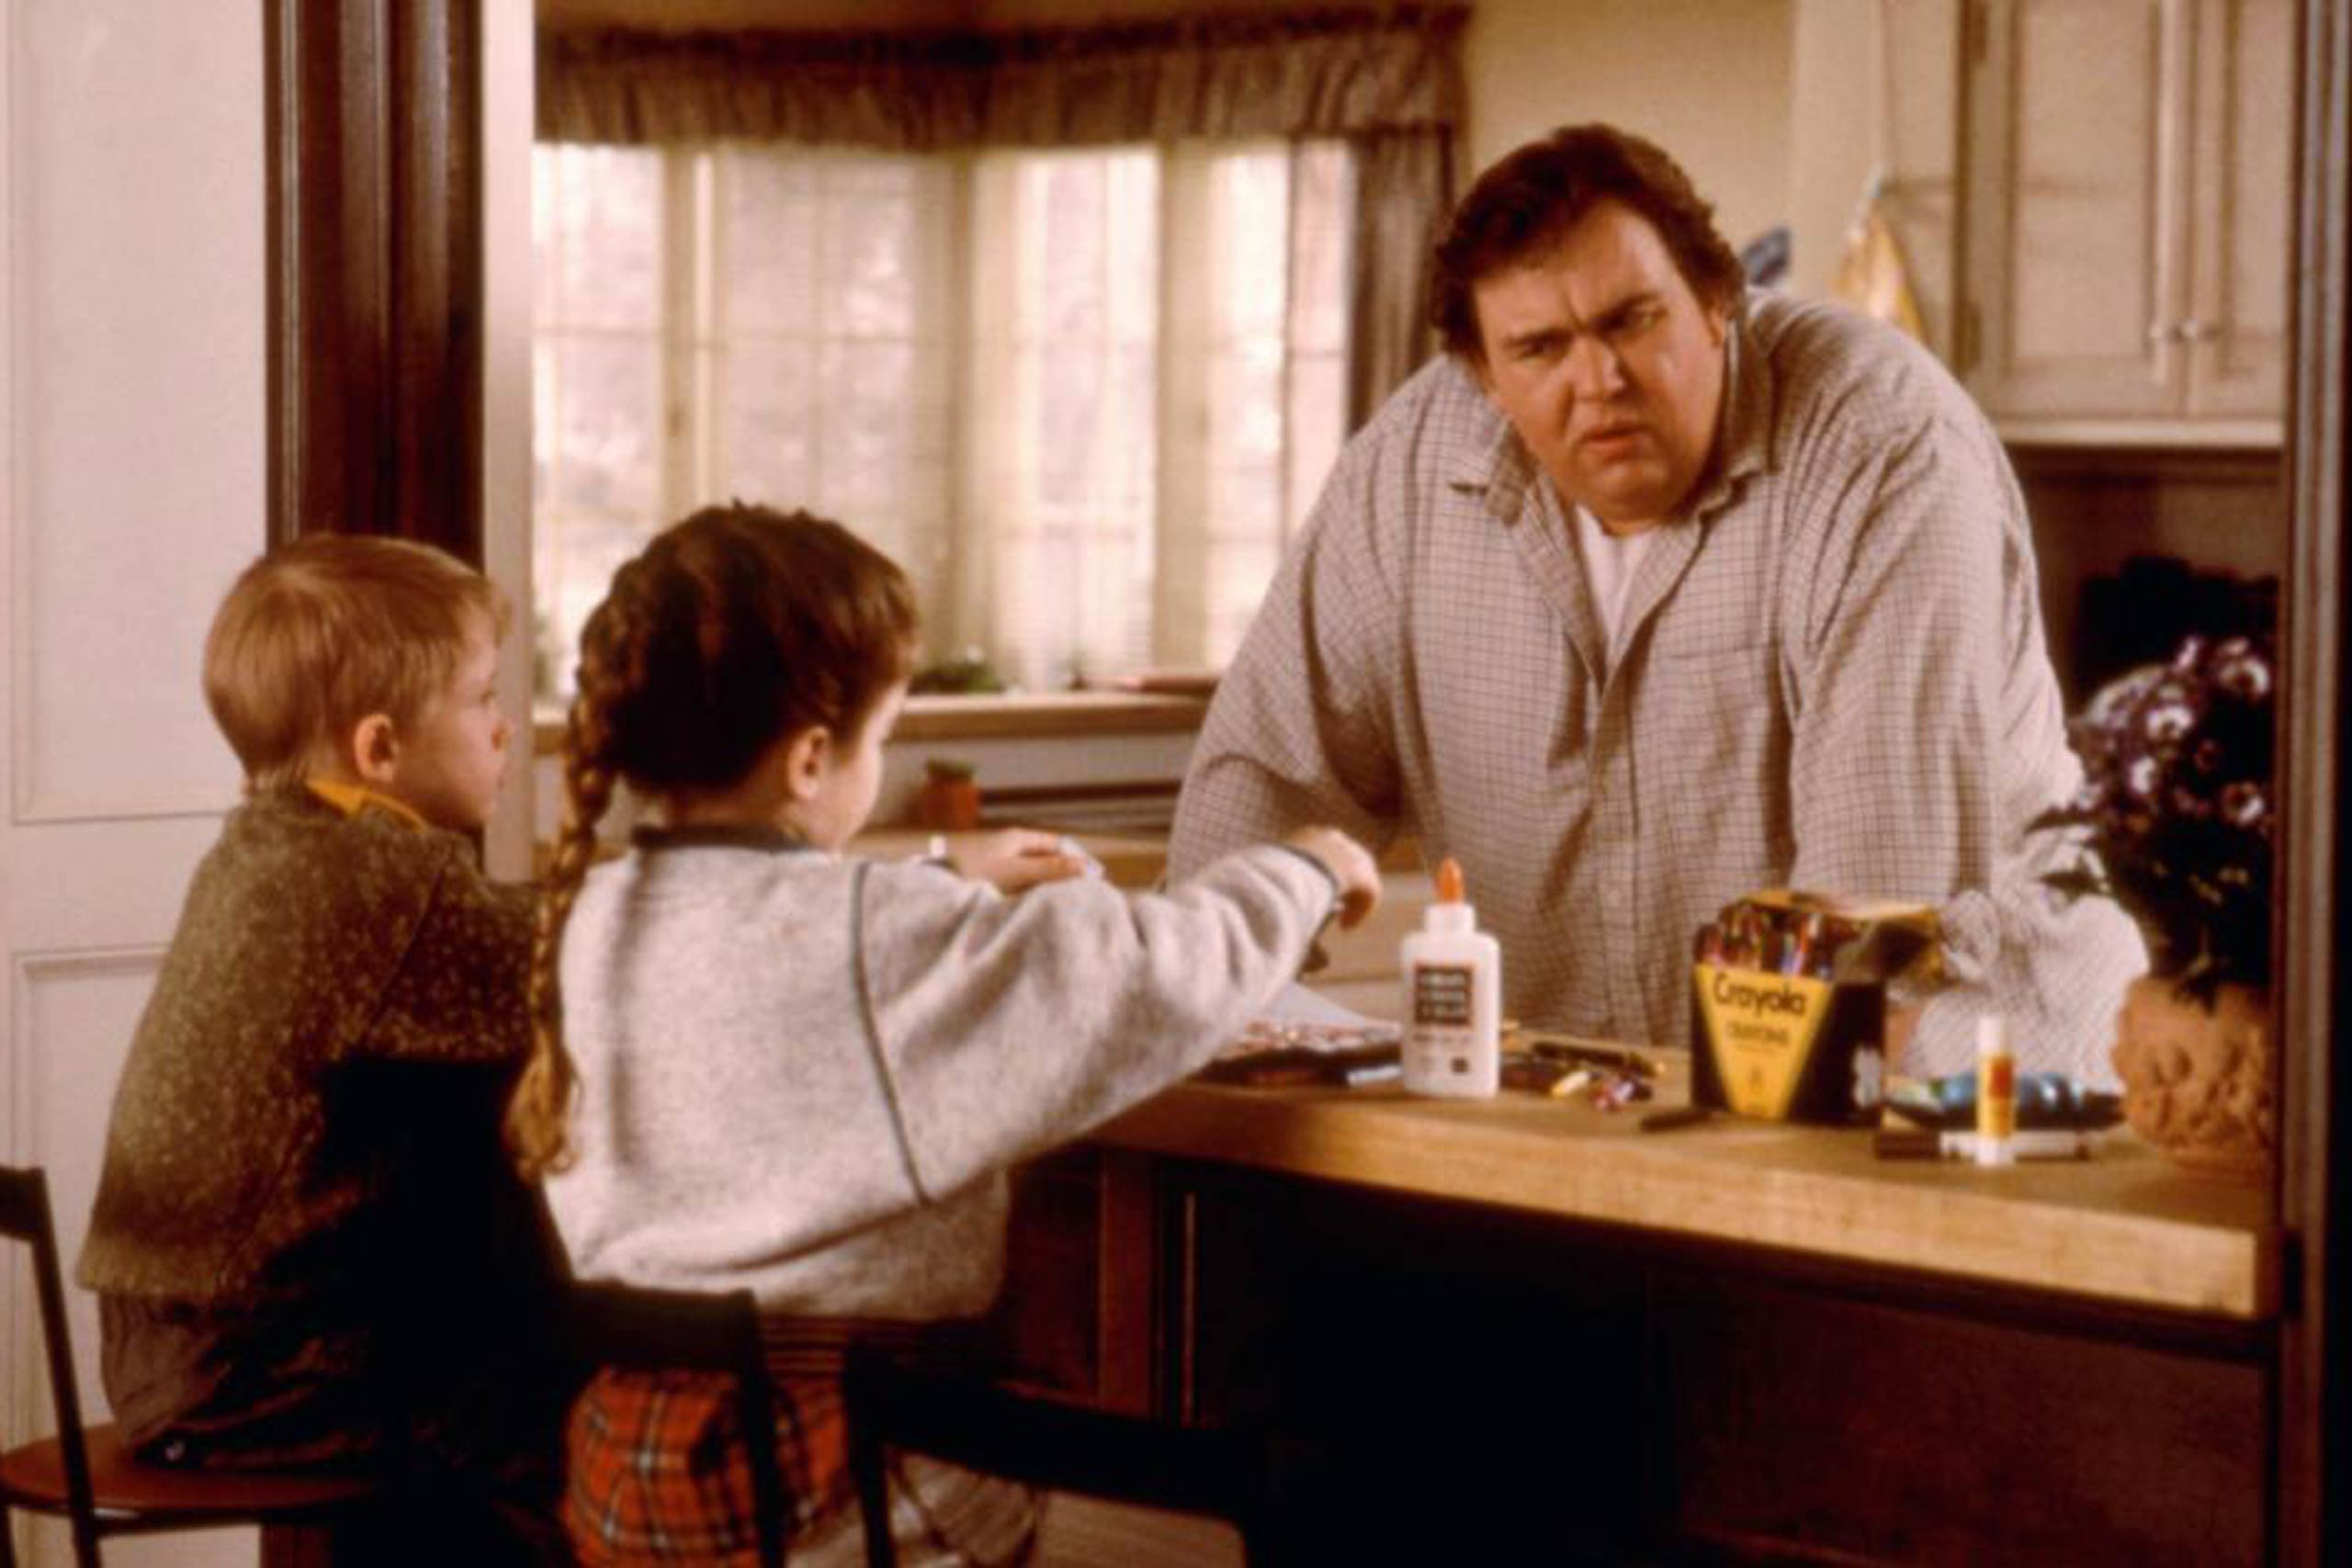 <strong><i>Uncle Buck</i> (ABC)</strong>                                                                      Like the 1980s John Hughes movie starring John Candy, <i>Uncle Buck</i> in its TV show form will focus on a man who must learn to grow up by taking care of his brother's kids.